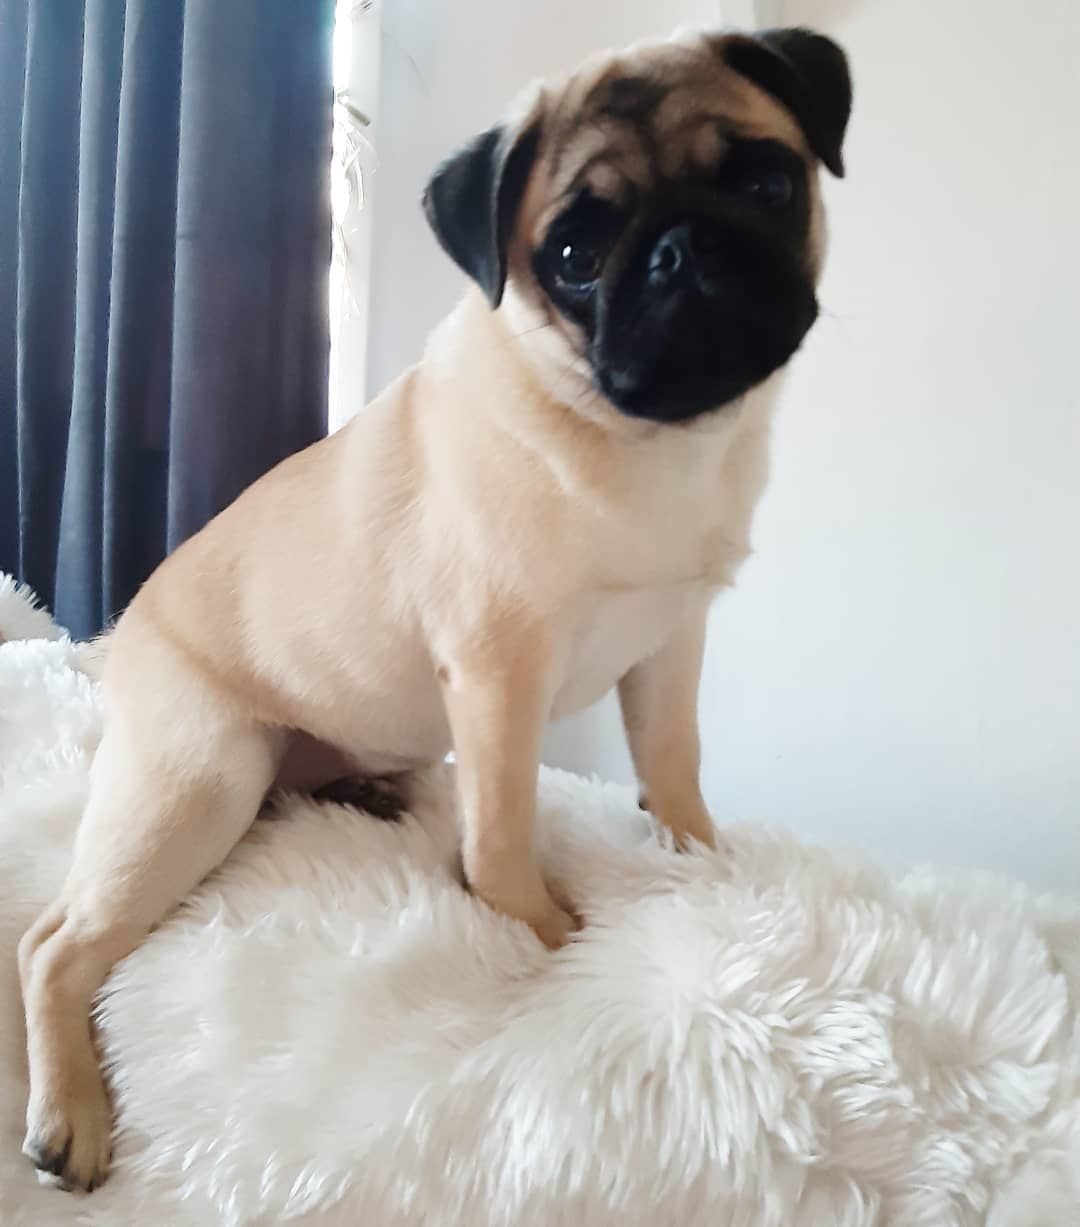 Adorable Pug Dog Pugs Cute Pugs